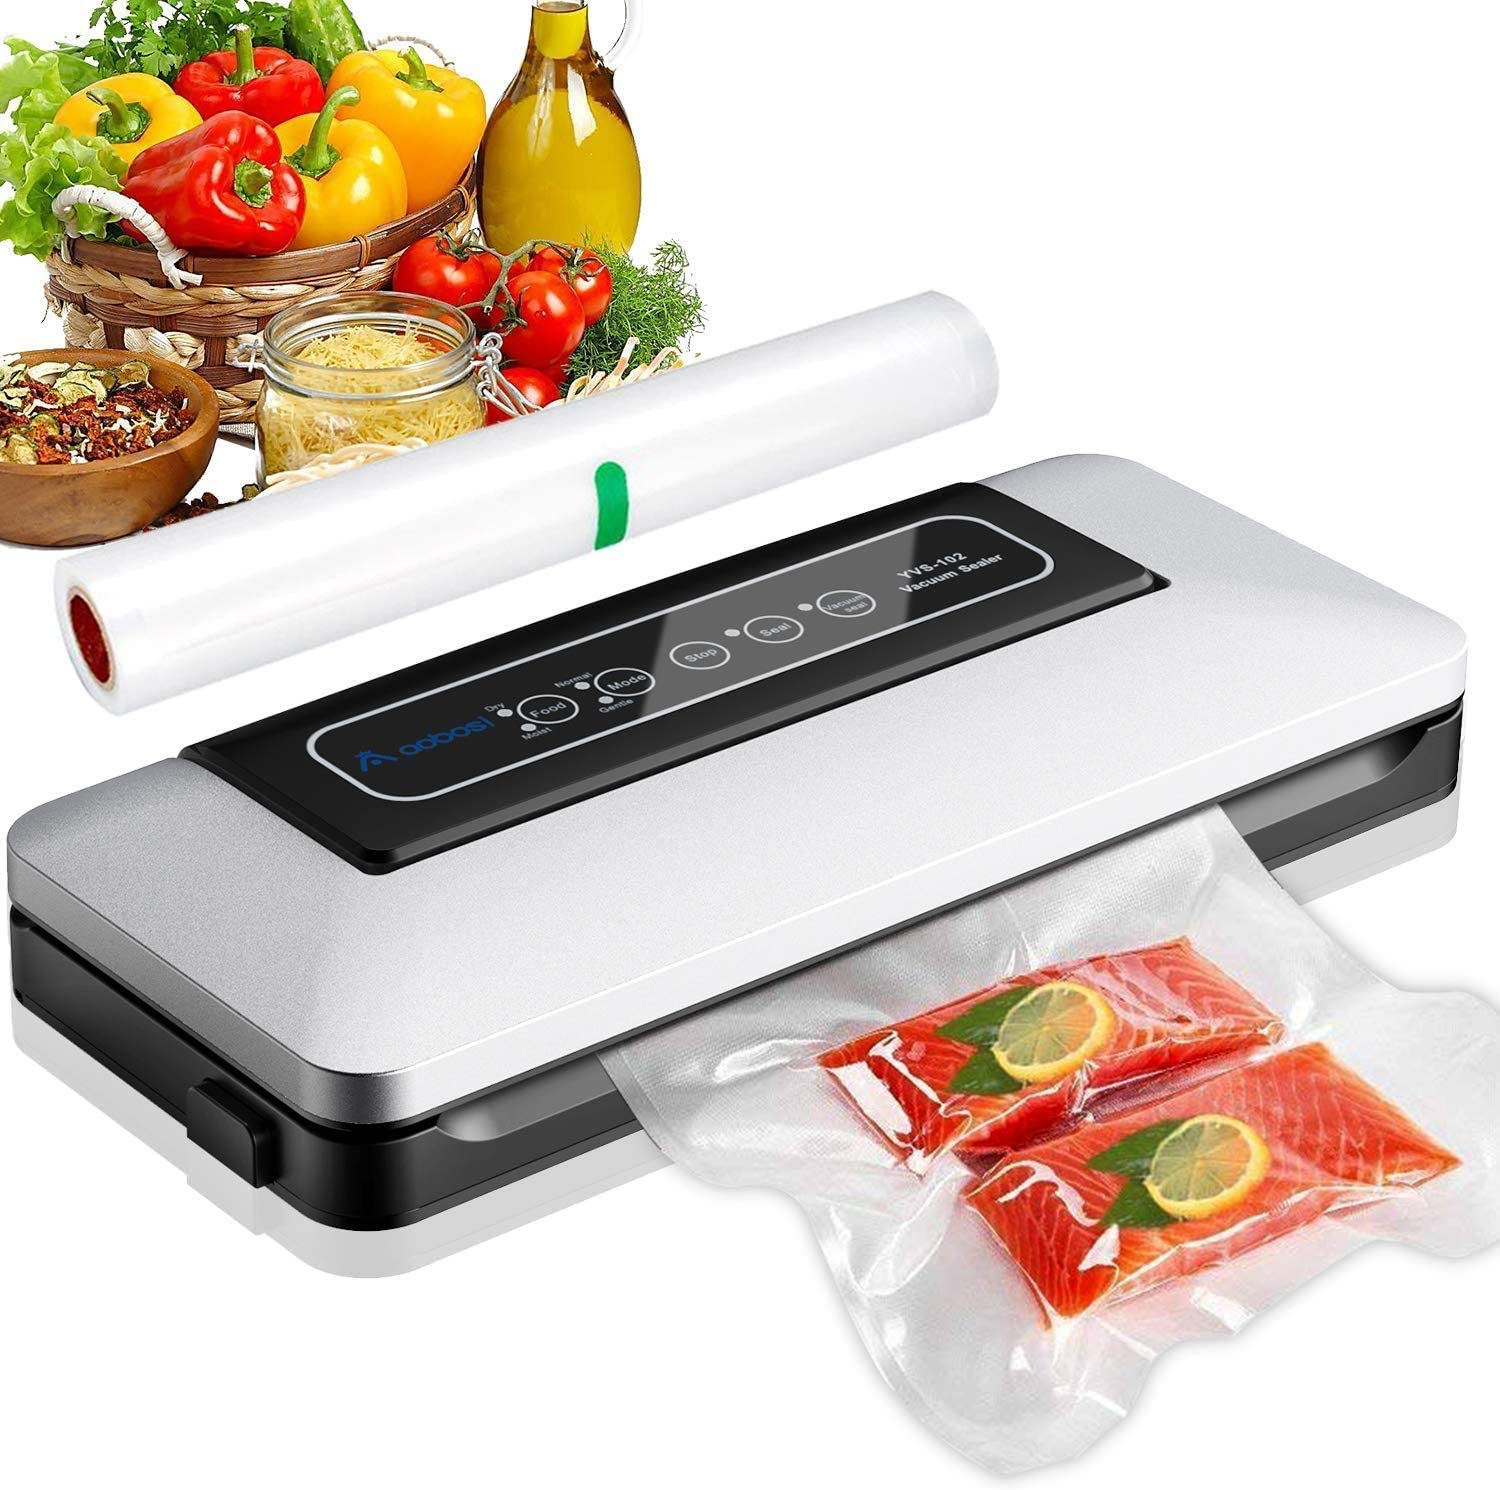 Aobosi Vacuum Sealer/5 In 1 Automatic Food Sealer Machine for Food Storage and Preservation with Dry&Moist Modes for Sous Vide,Led Indicator Lights&Started Kit of Rolls&Hose for Home 11 x 5 x 2 inches